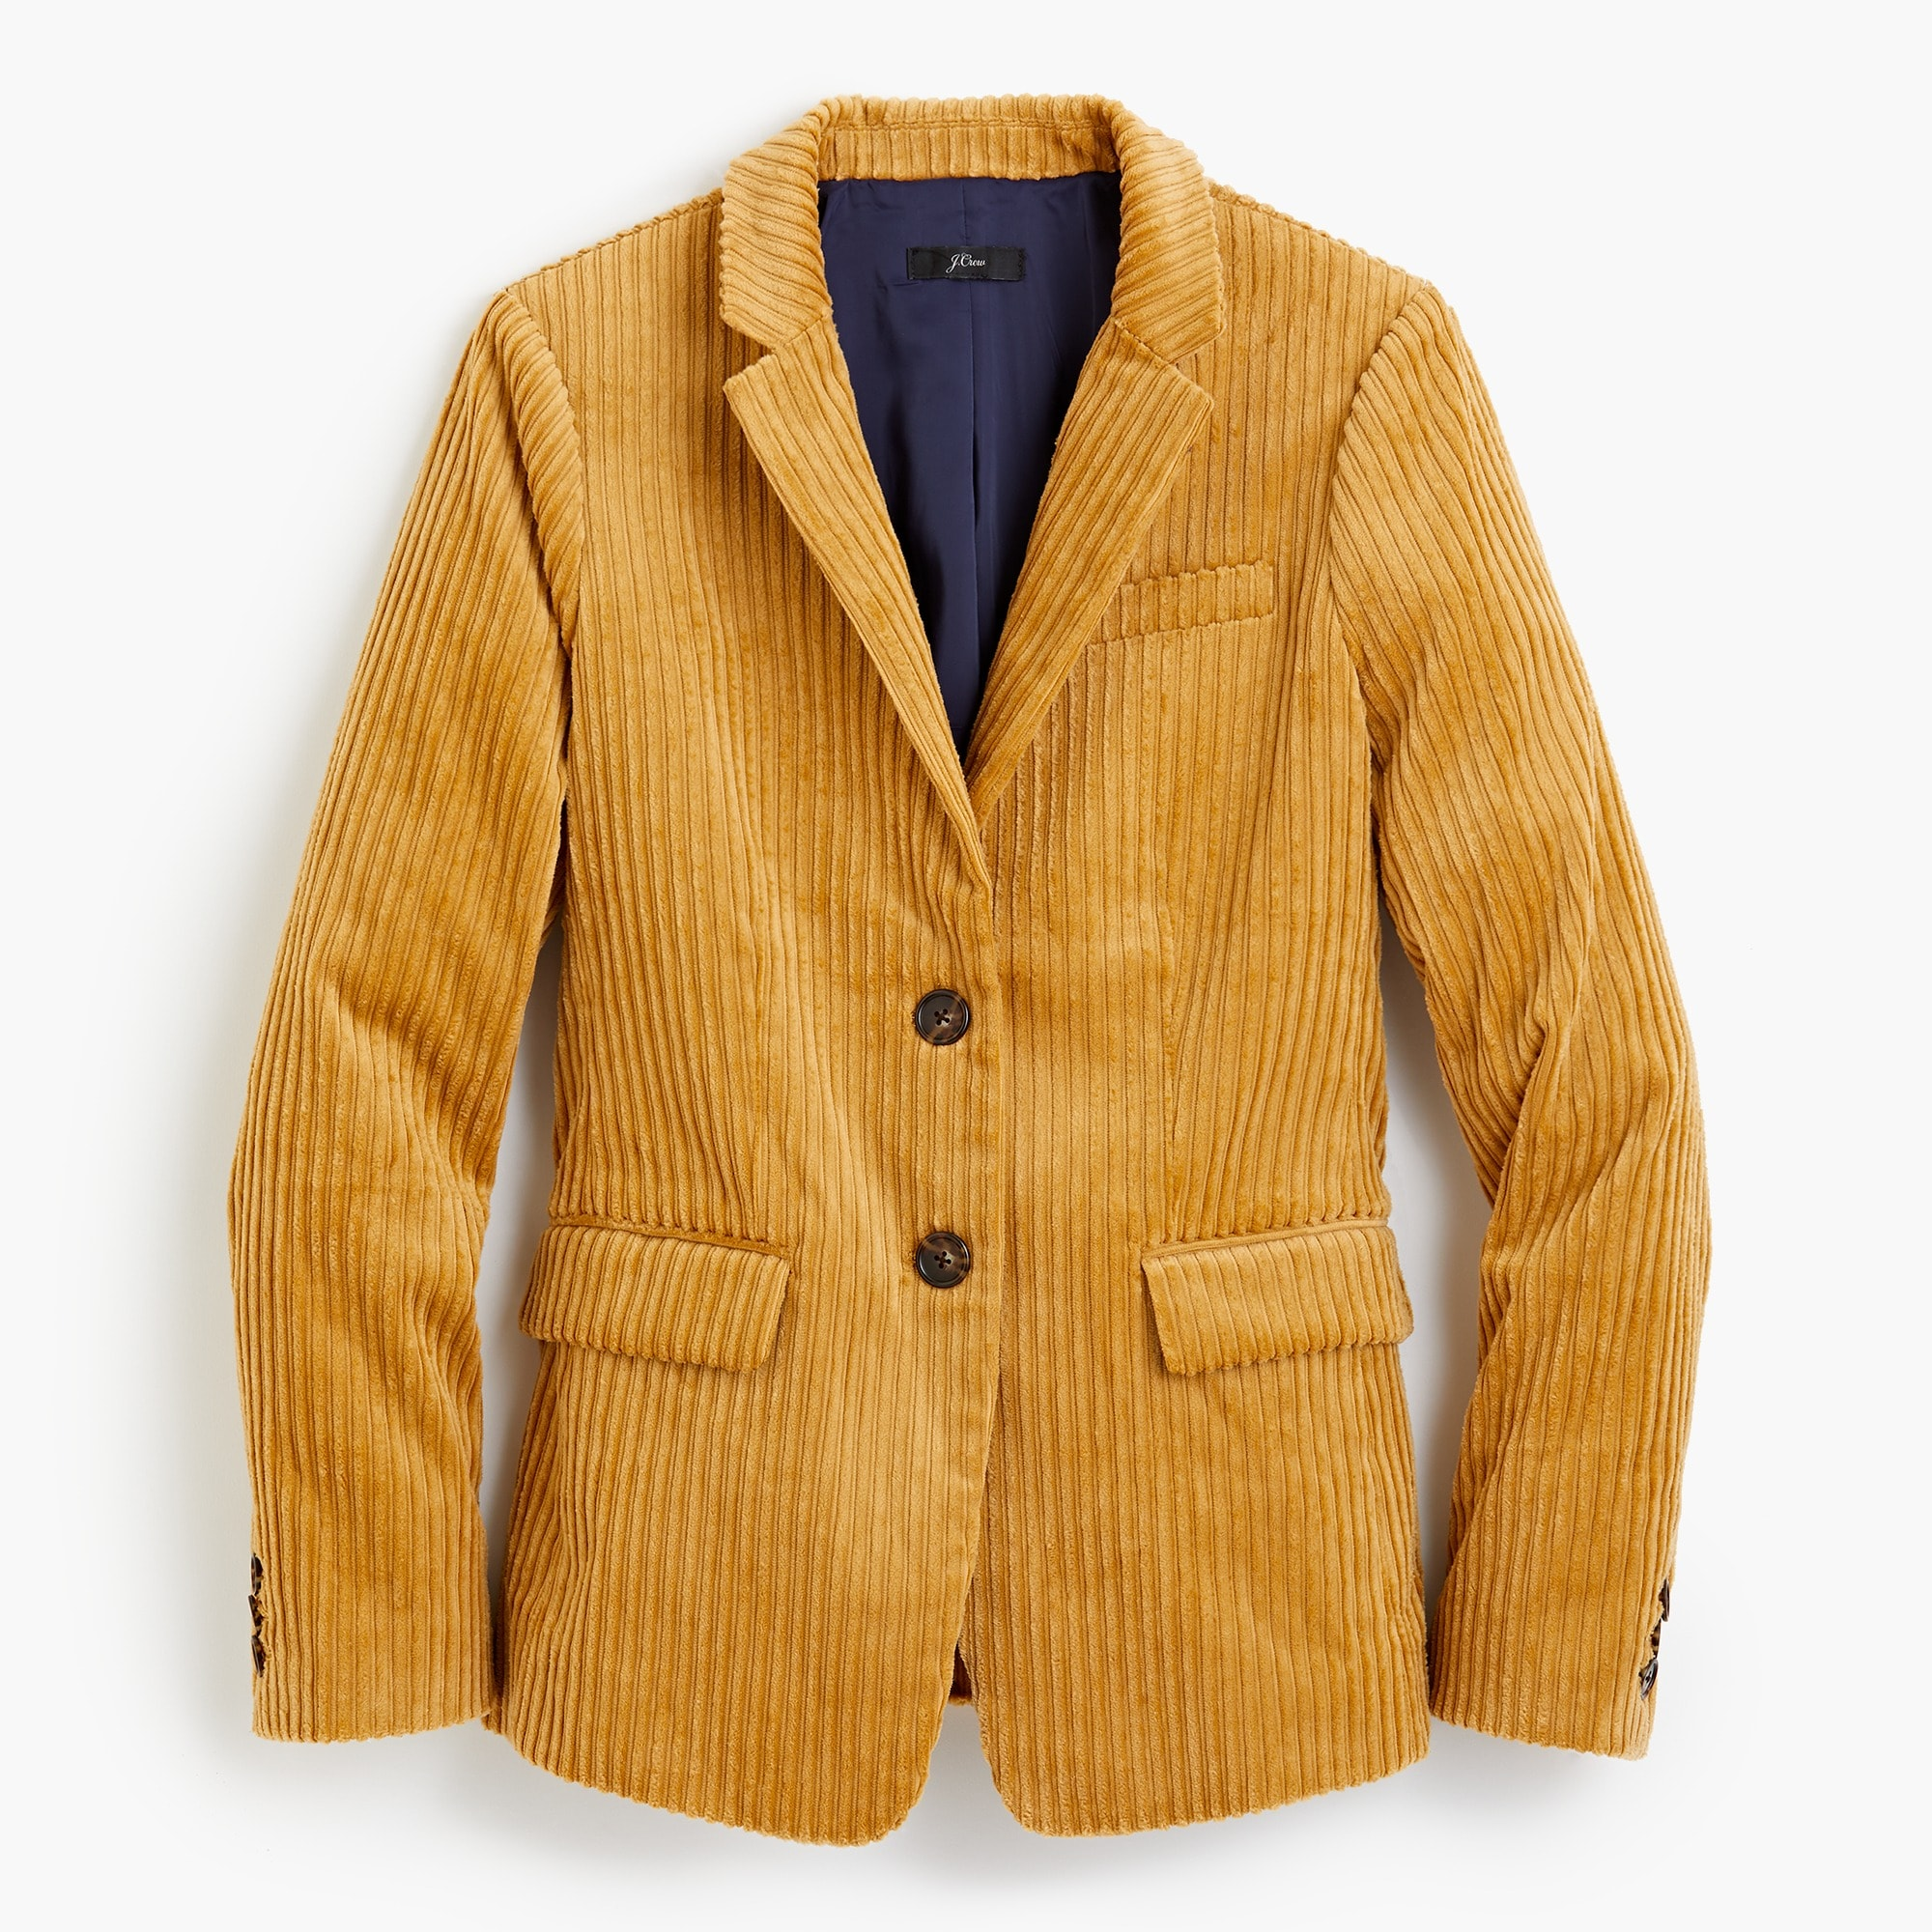 Image 1 for Tall corduroy blazer